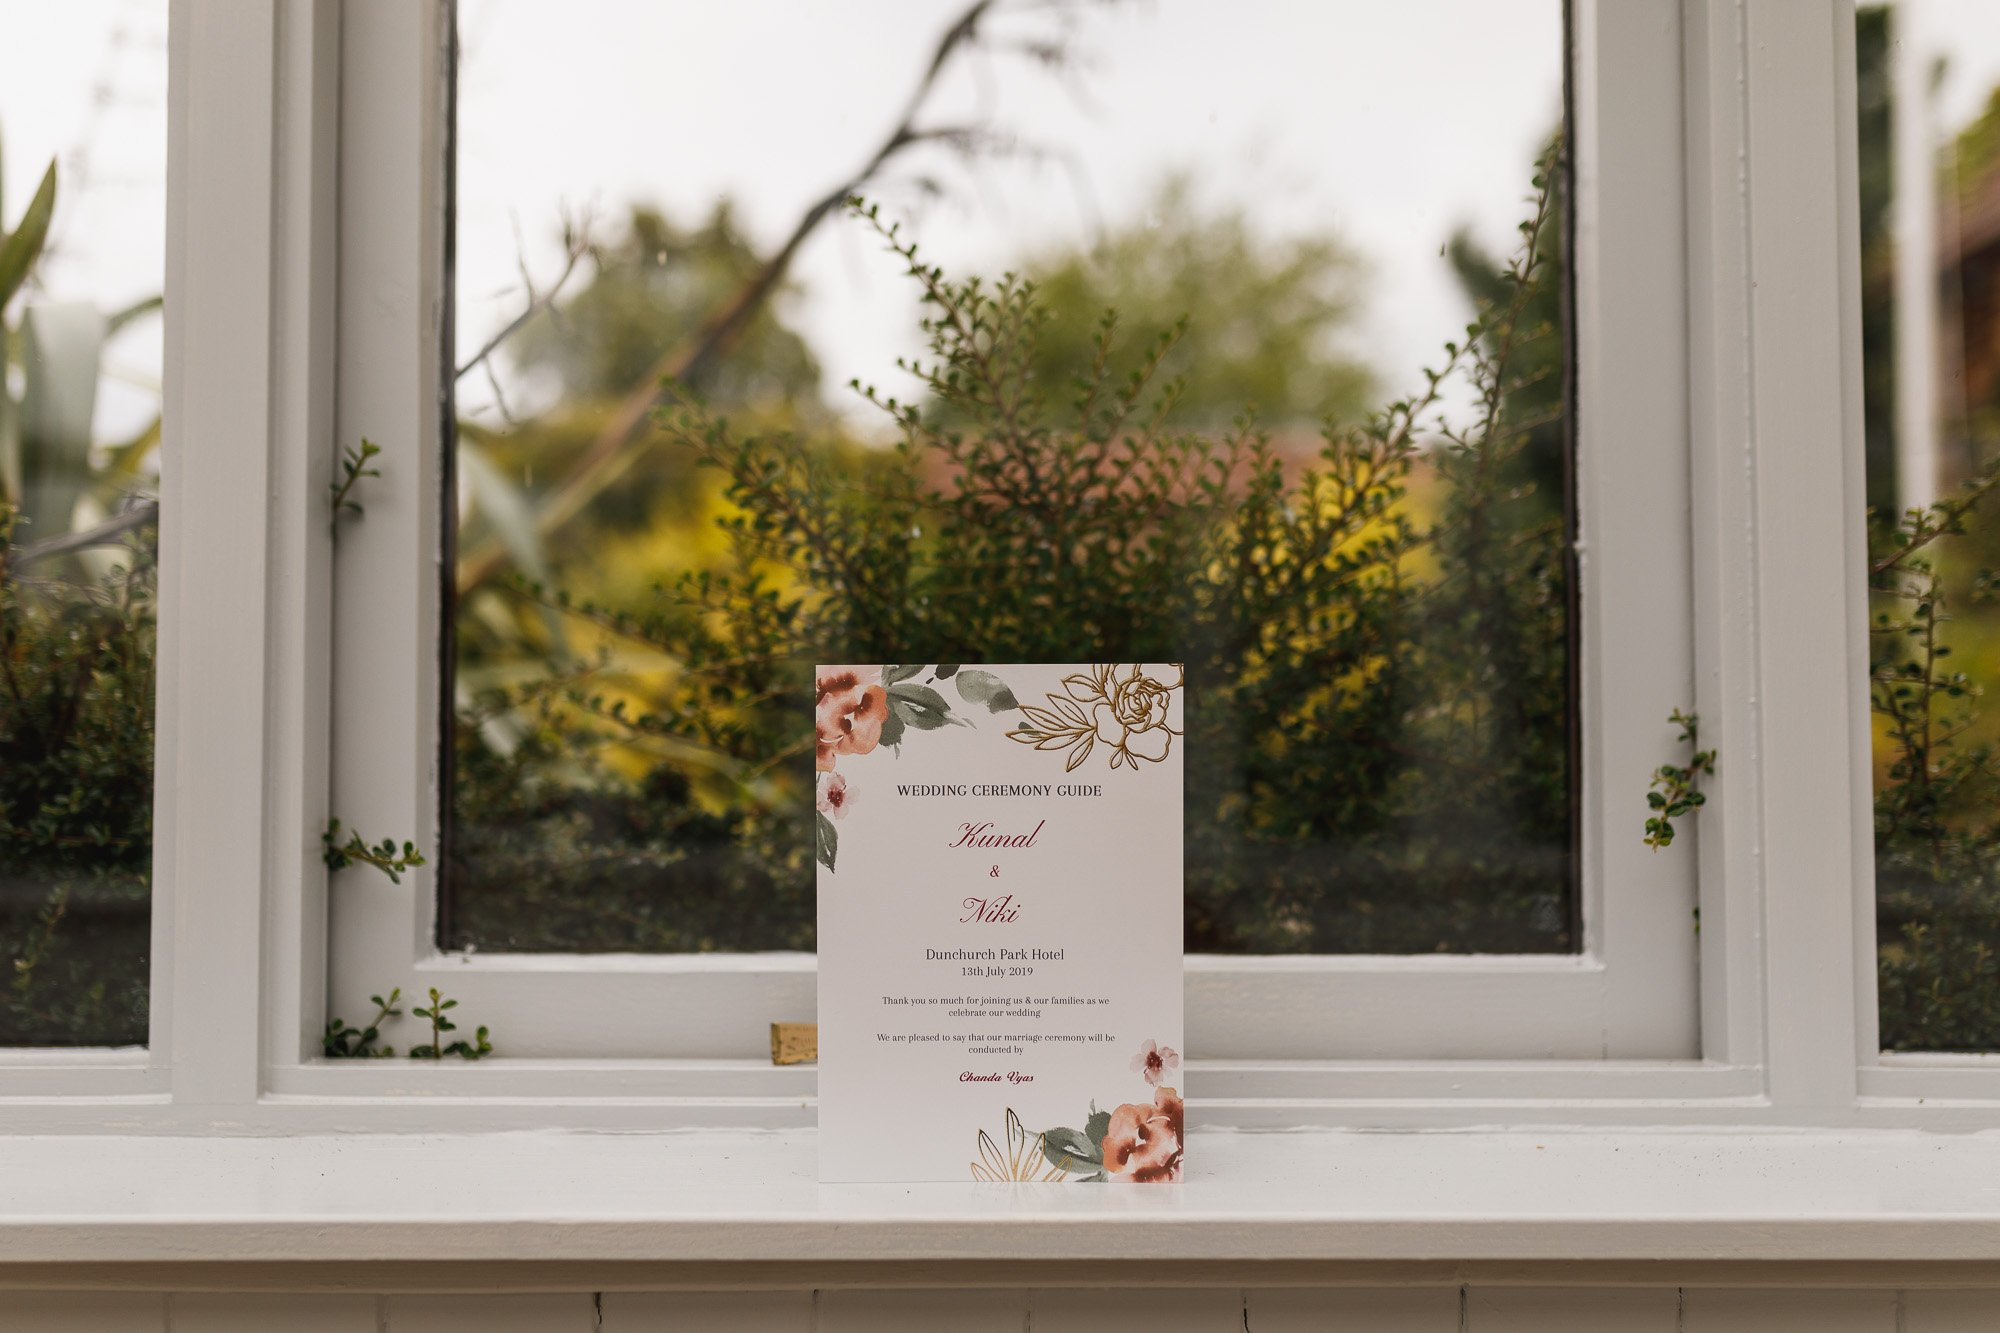 Dunchurch Park Hotel, Midlands Asian Wedding Photographer, wedding ceremony guide